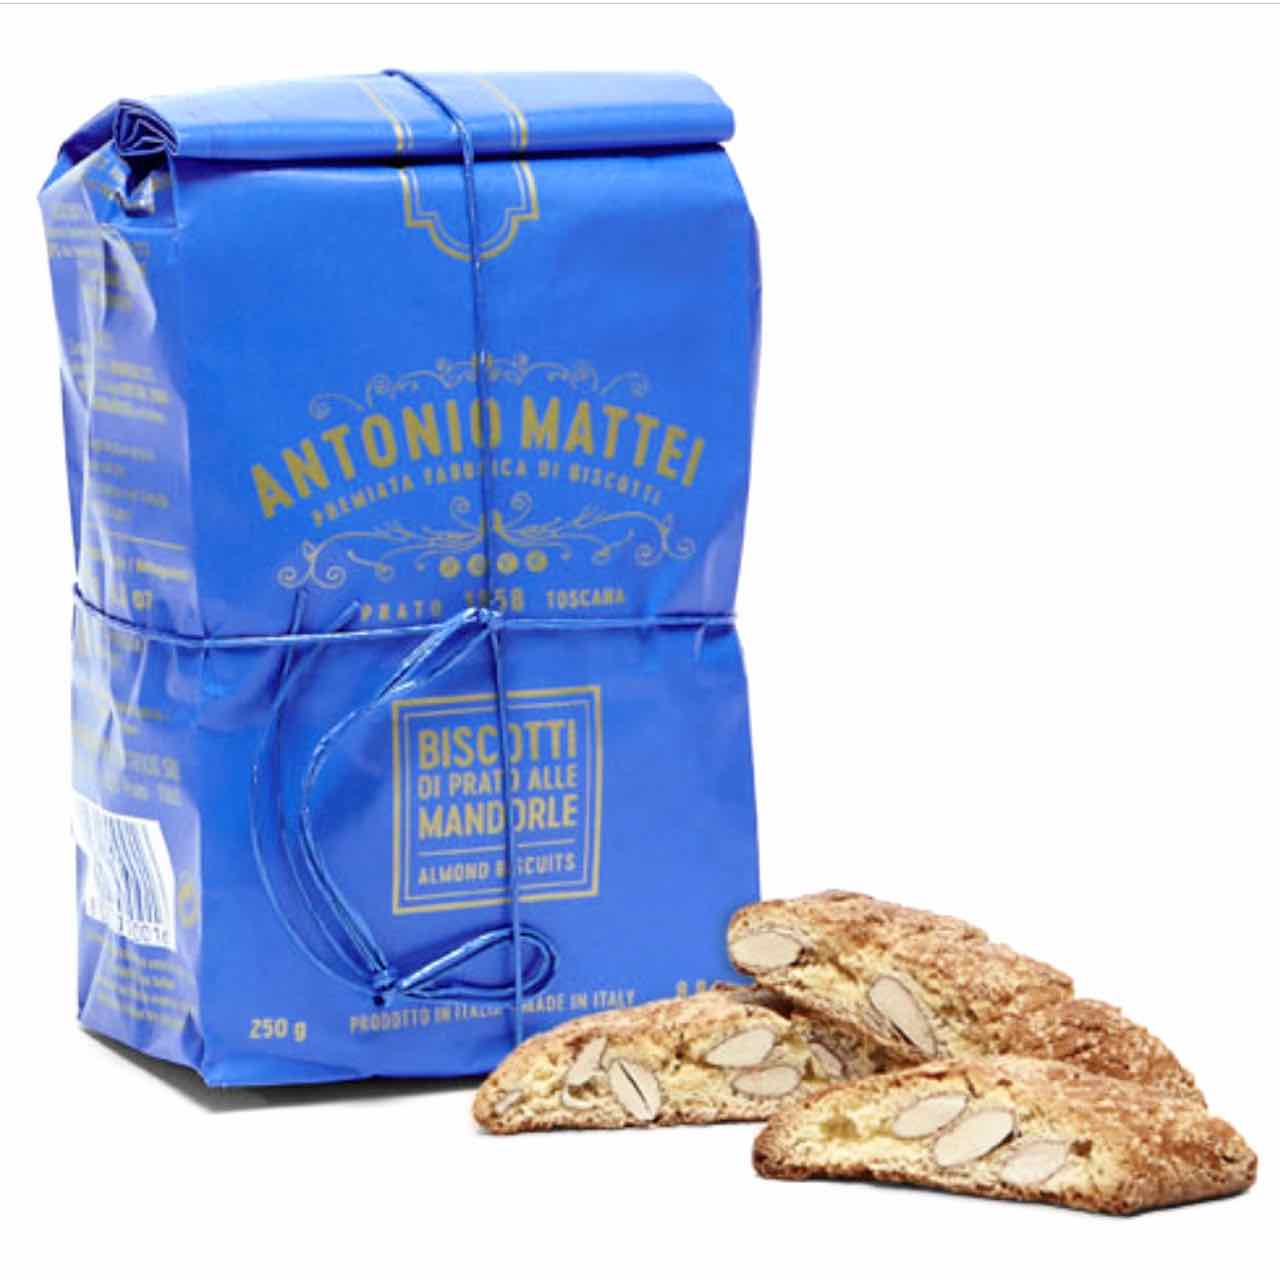 Antonio Mattei Prato biscuits – cantuccini – cantucci – Gustorotondo – best Italian food – Gustorotondo online food shop – authentic Italian artisan food